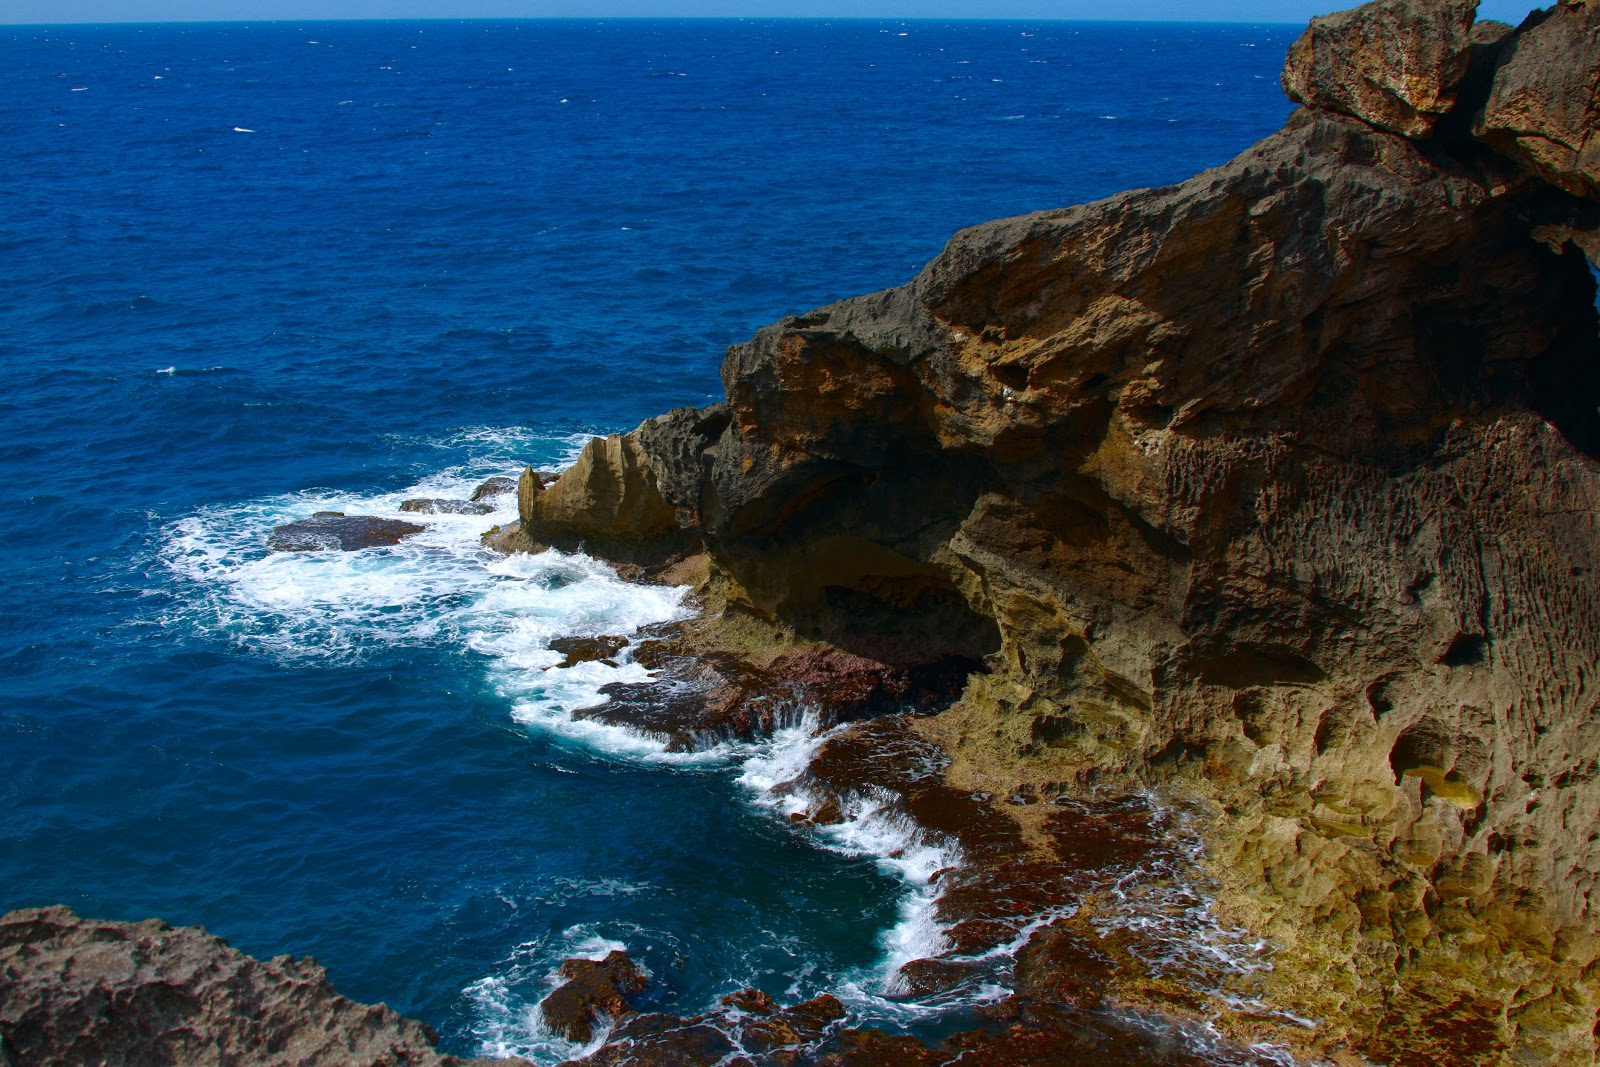 Cliffdiving off Cueva Del Indio is one of the fun things to do in Puerto Rico